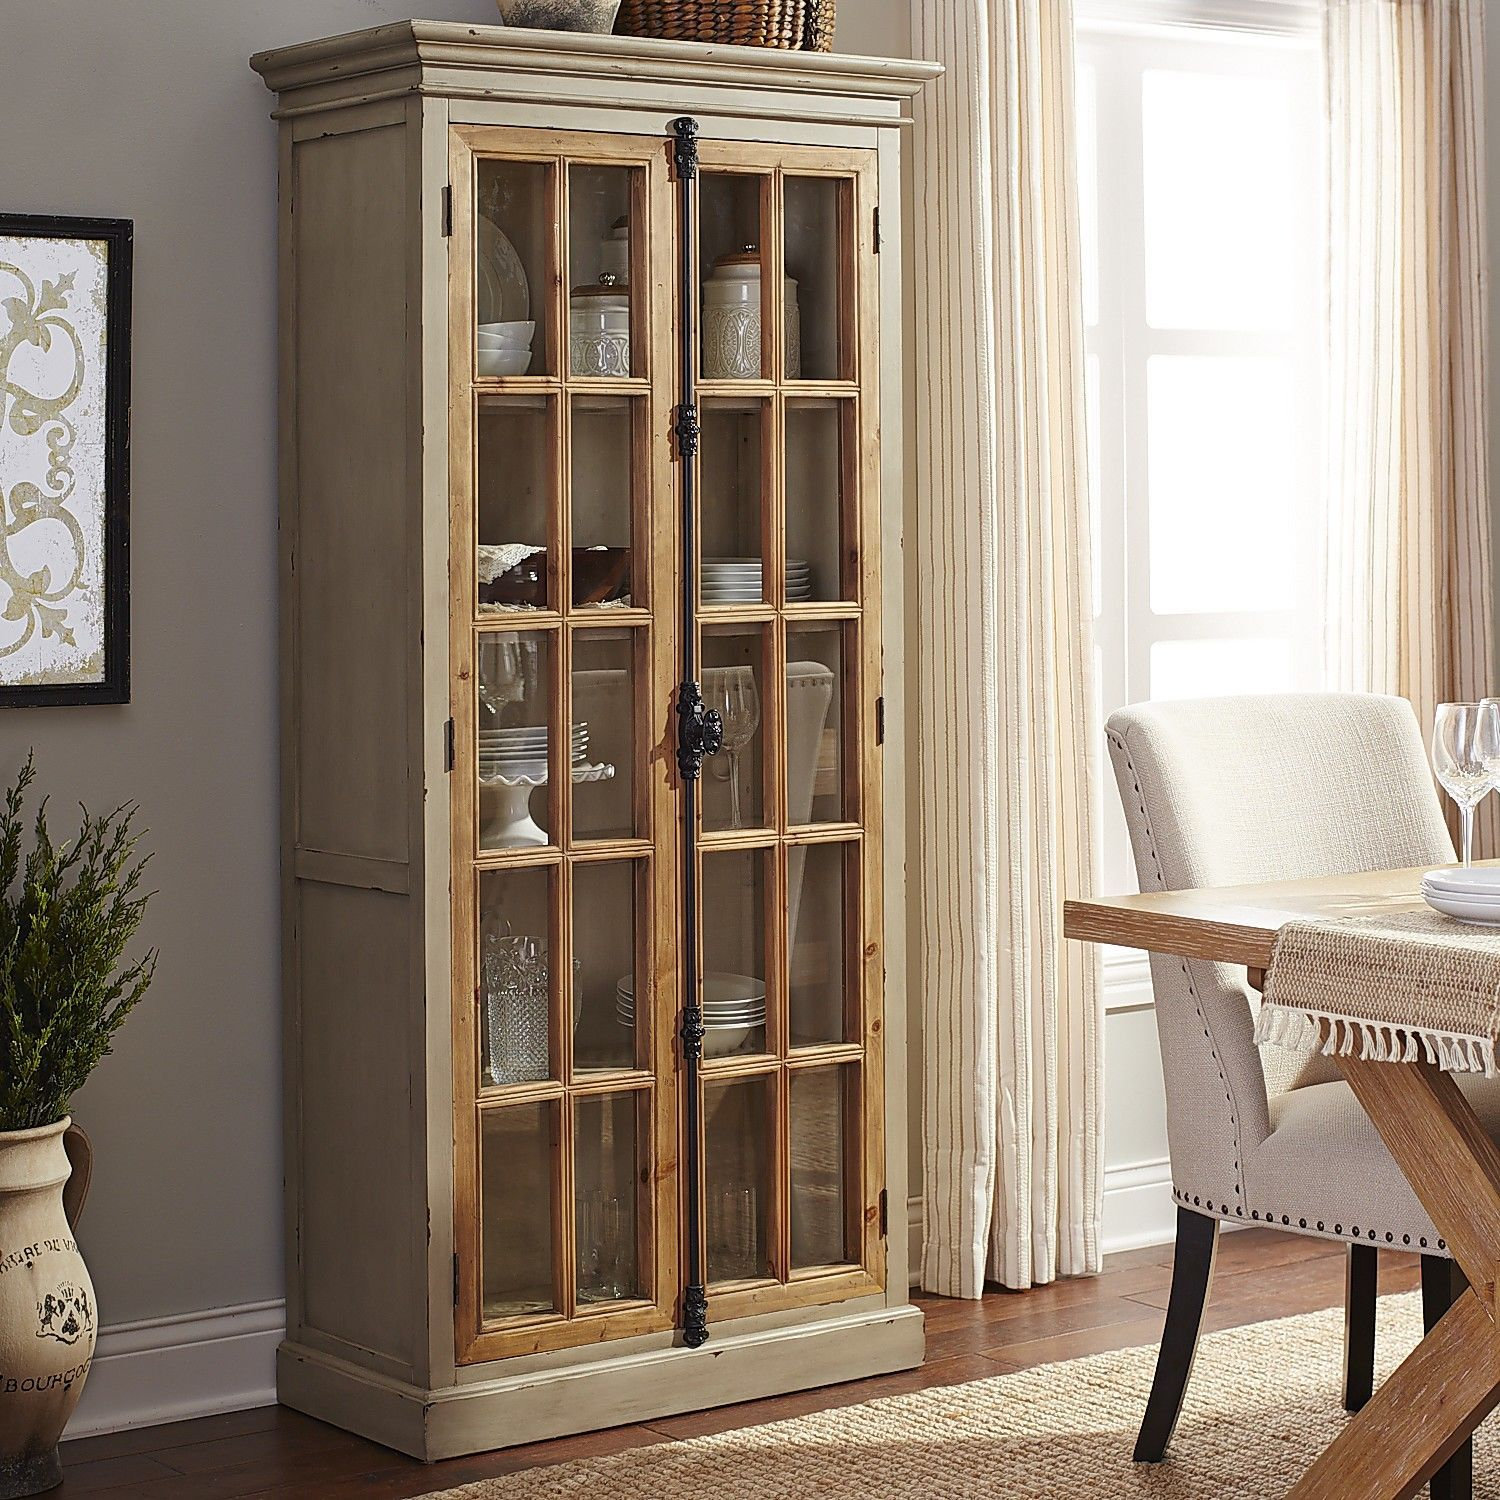 Cremone Linen Gray 72 Quot Tall Cabinet For The Home